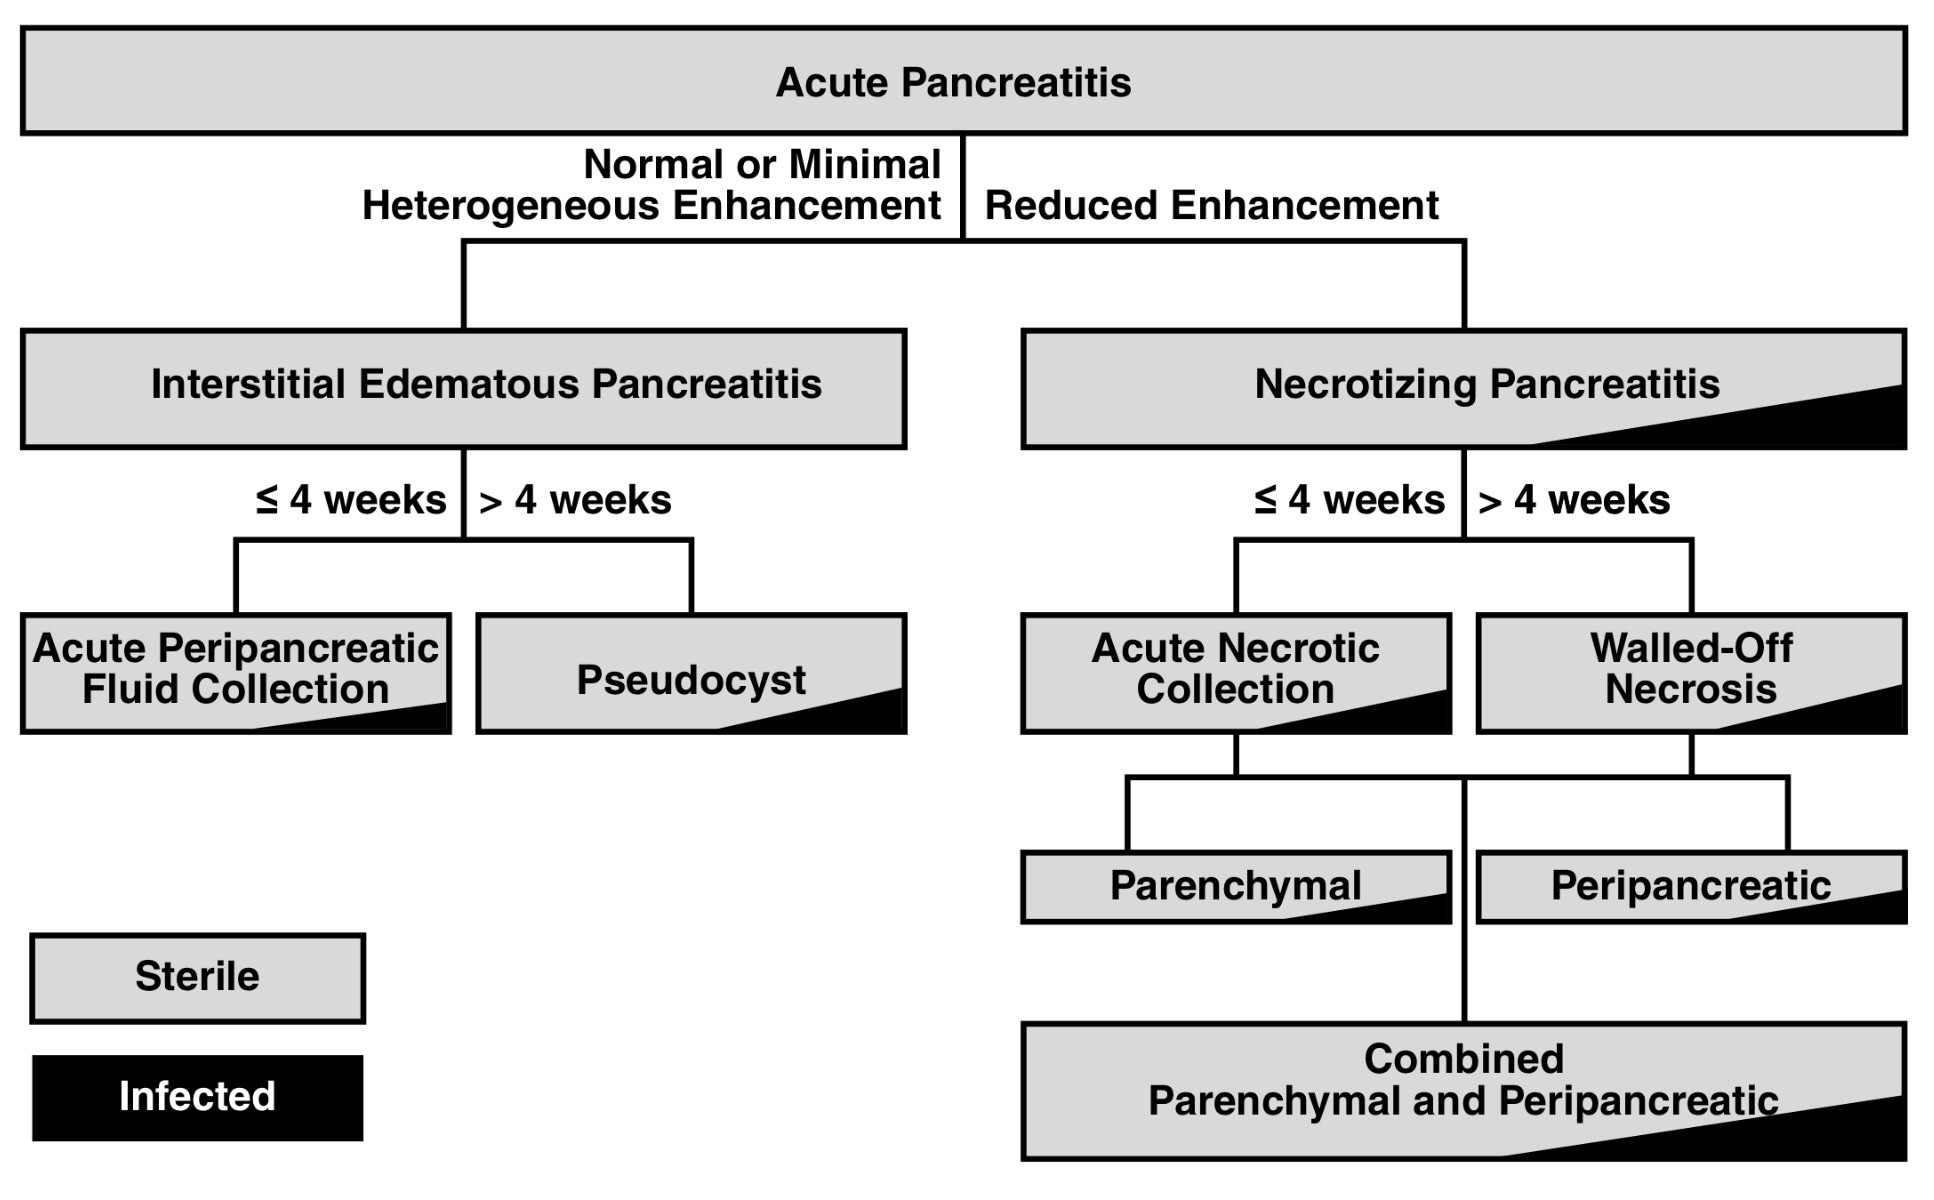 Pancreatitis classification